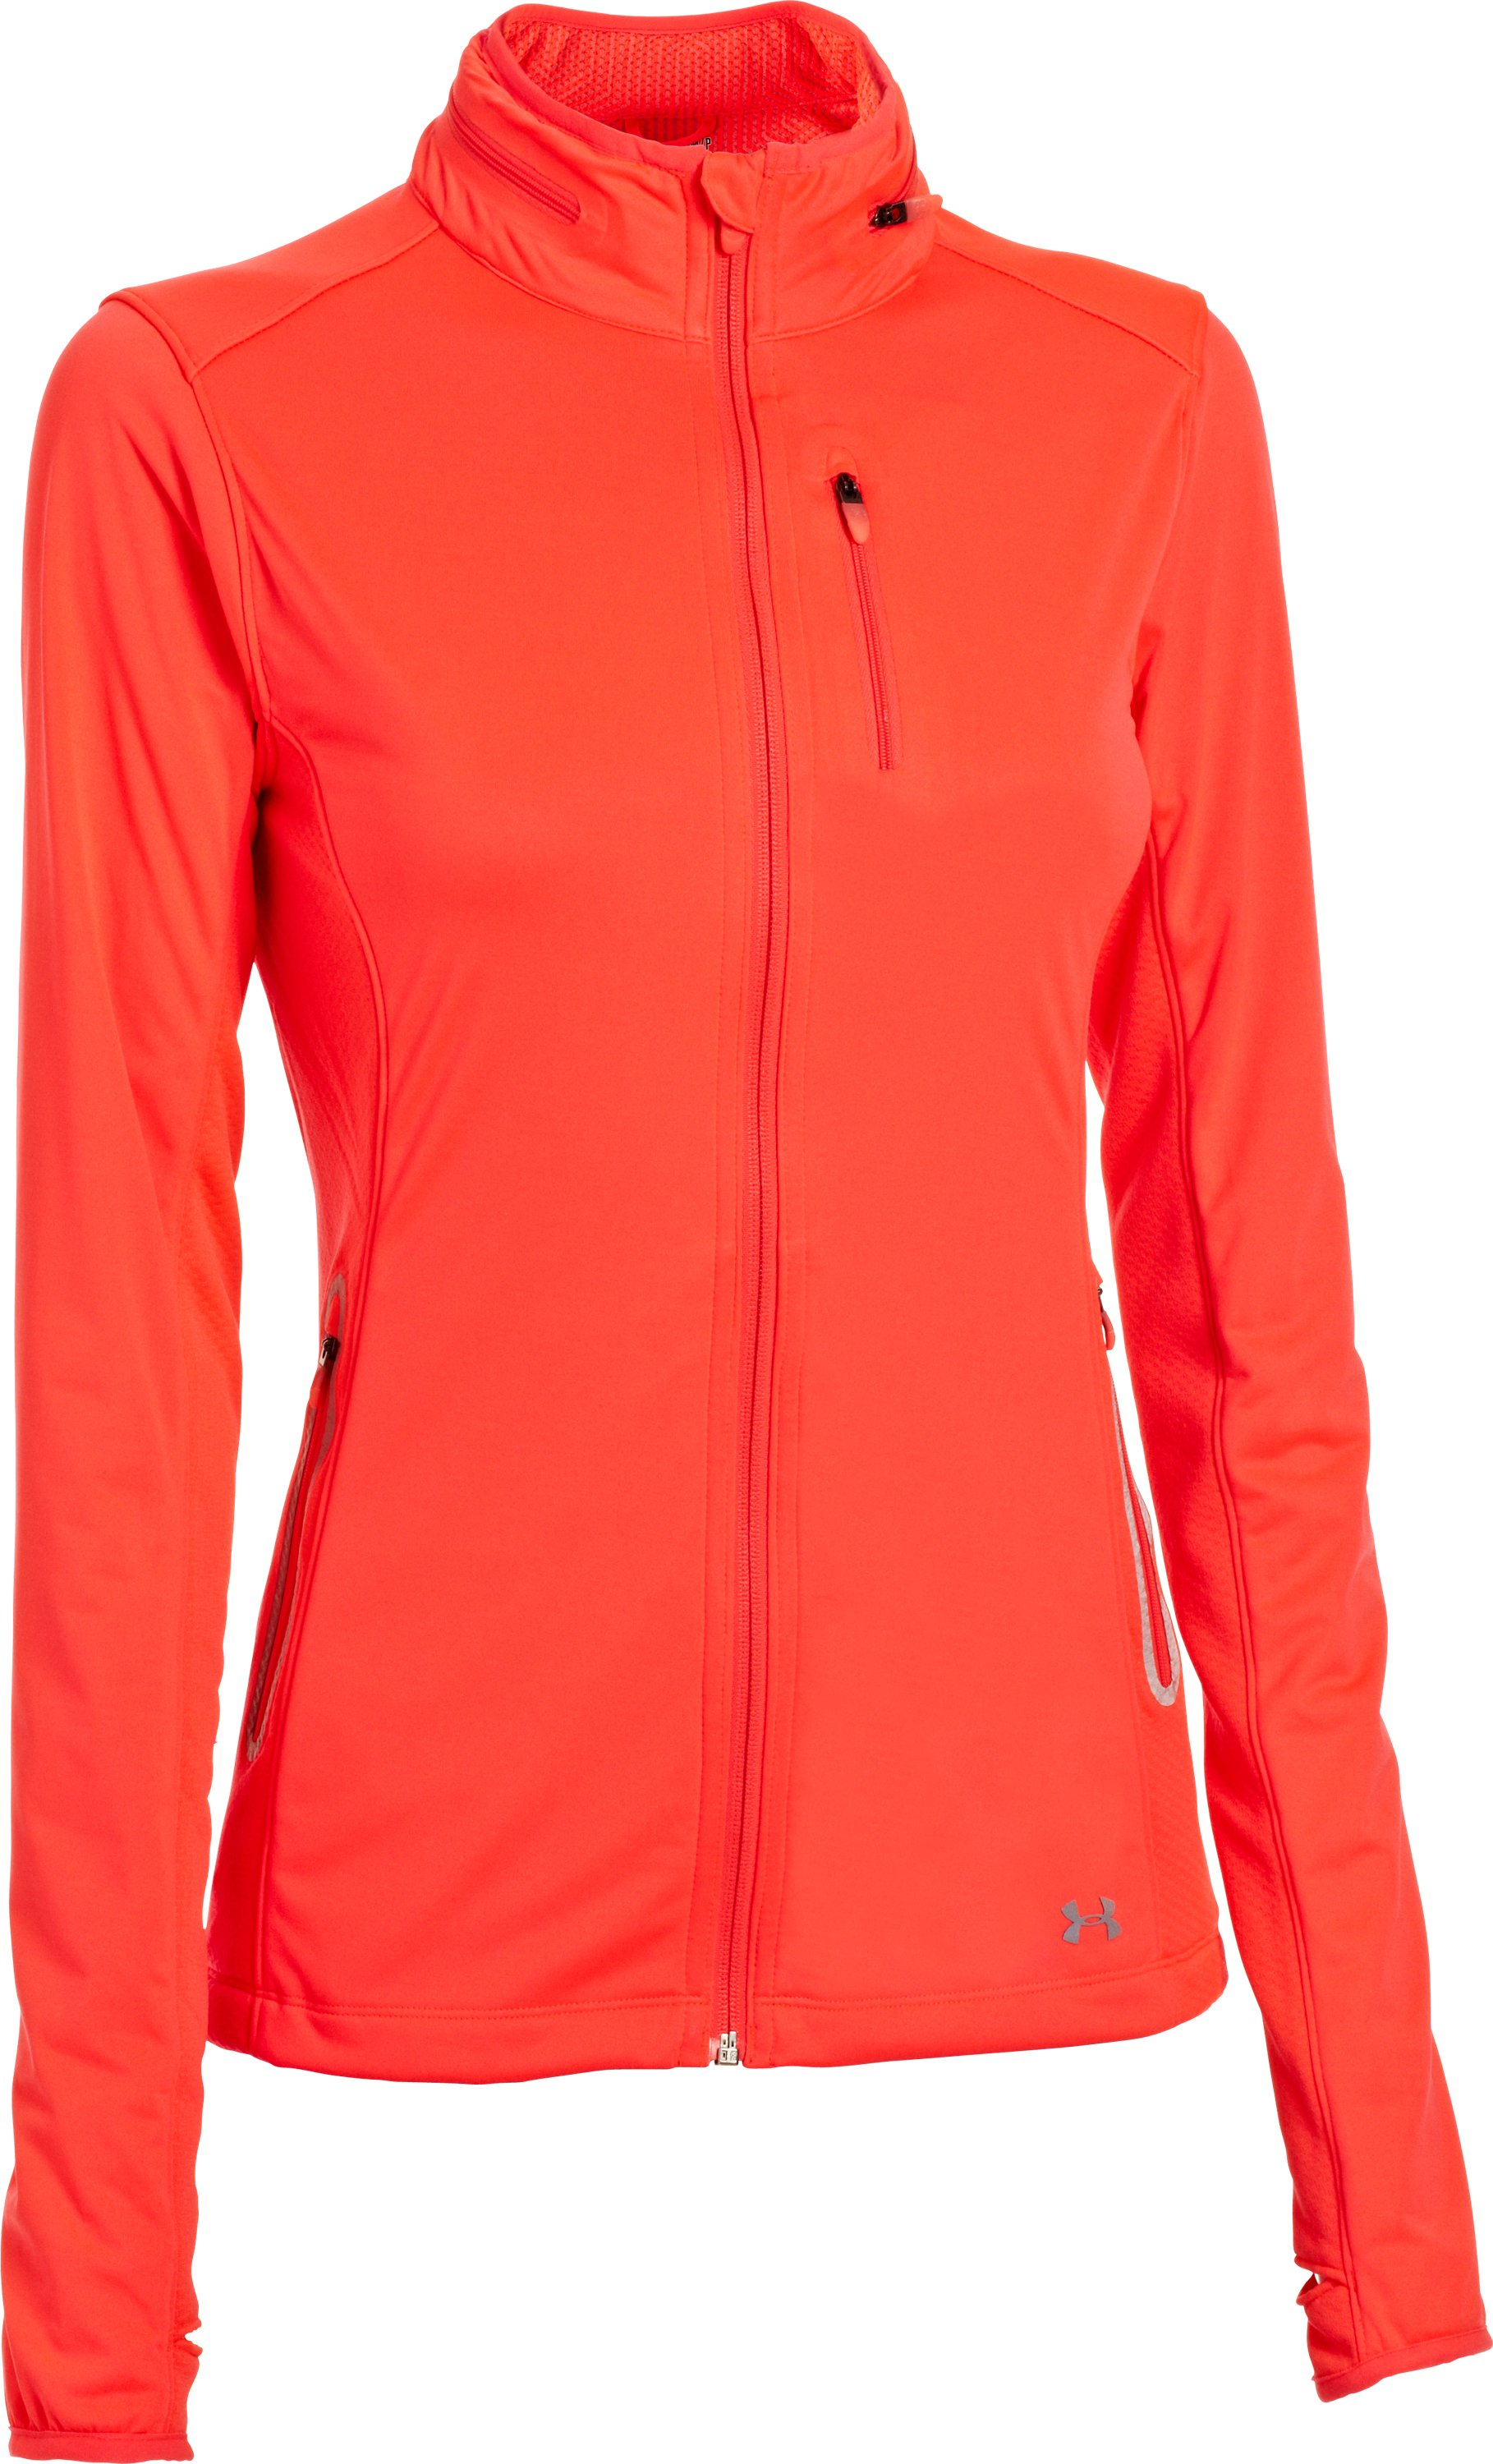 Women's ColdGear® Infrared Storm Jacket, Neo Pulse